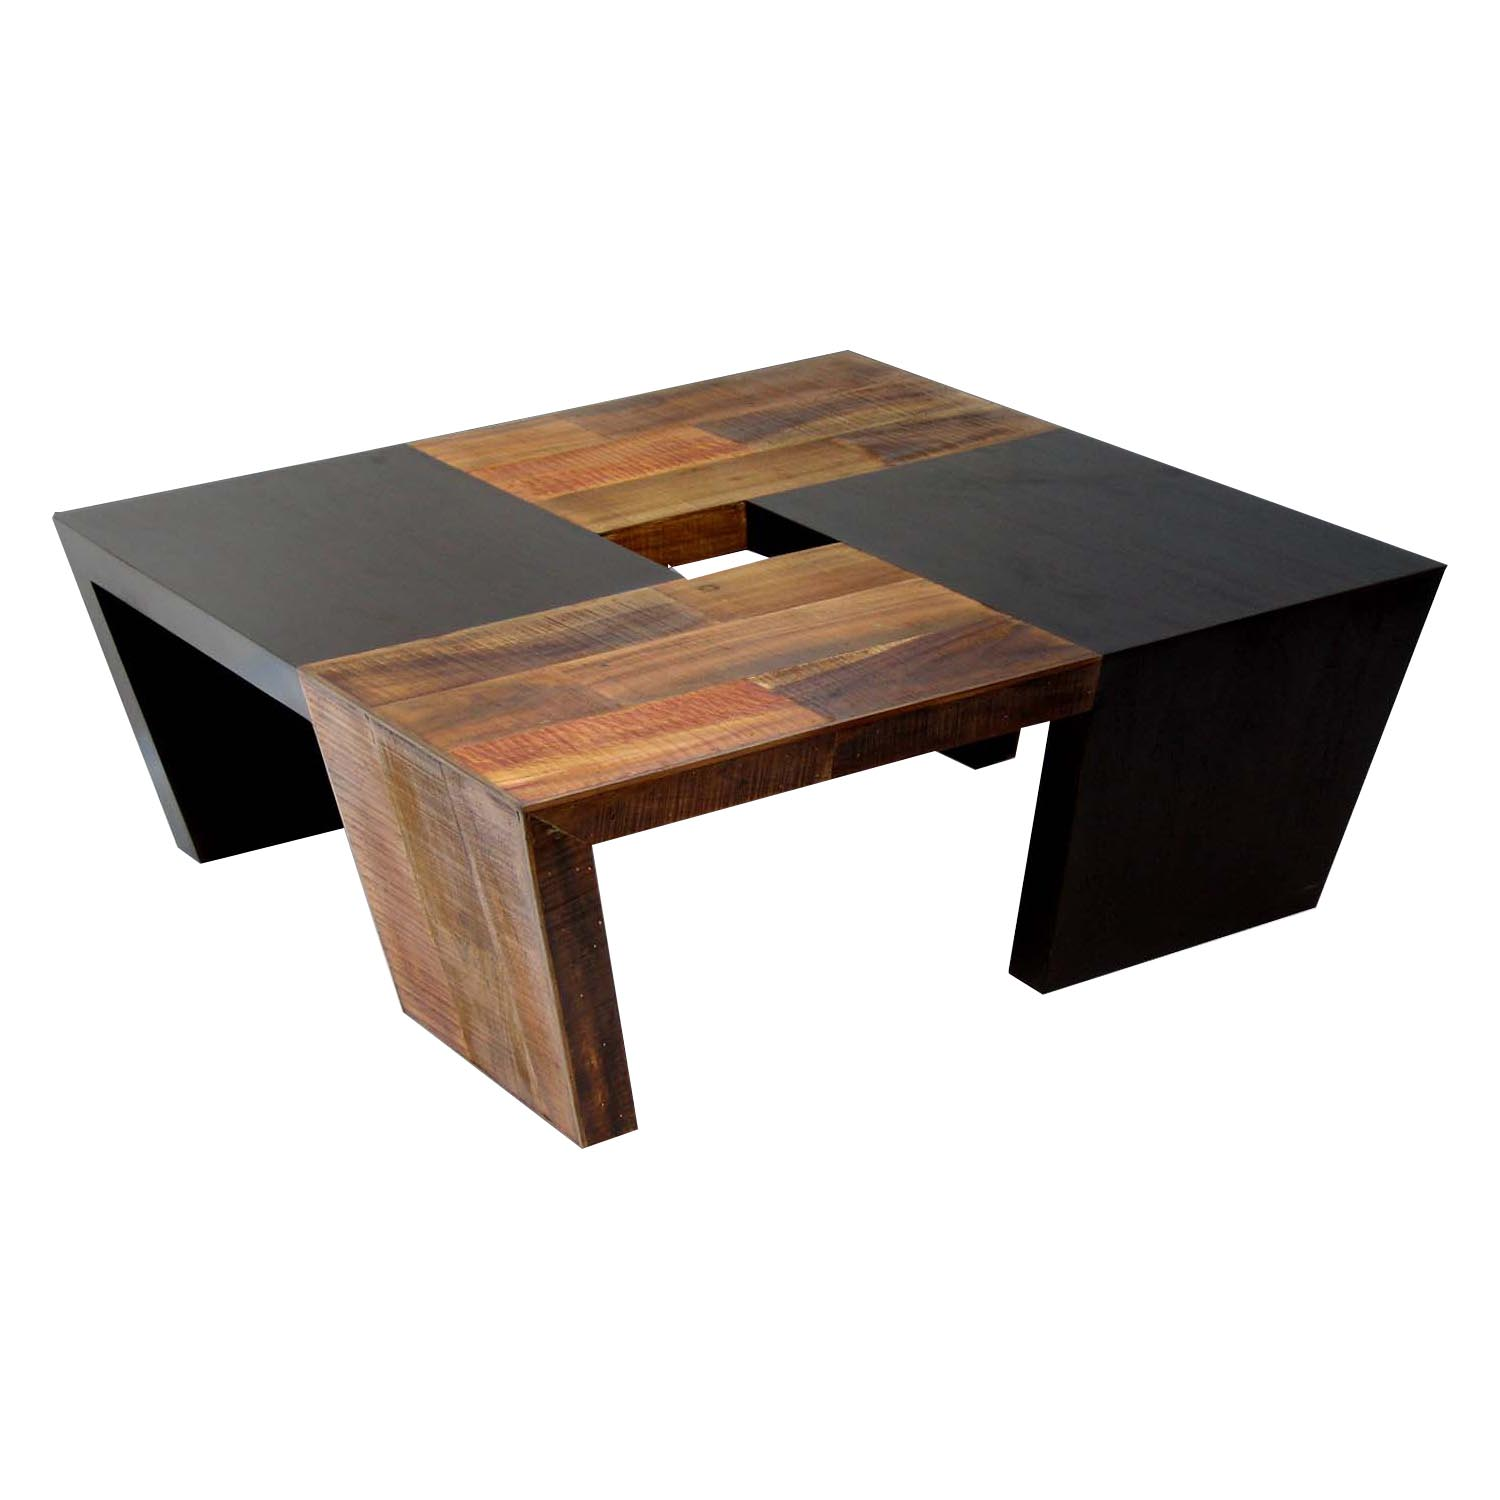 modern wood coffee table coffee table design ideas. Black Bedroom Furniture Sets. Home Design Ideas